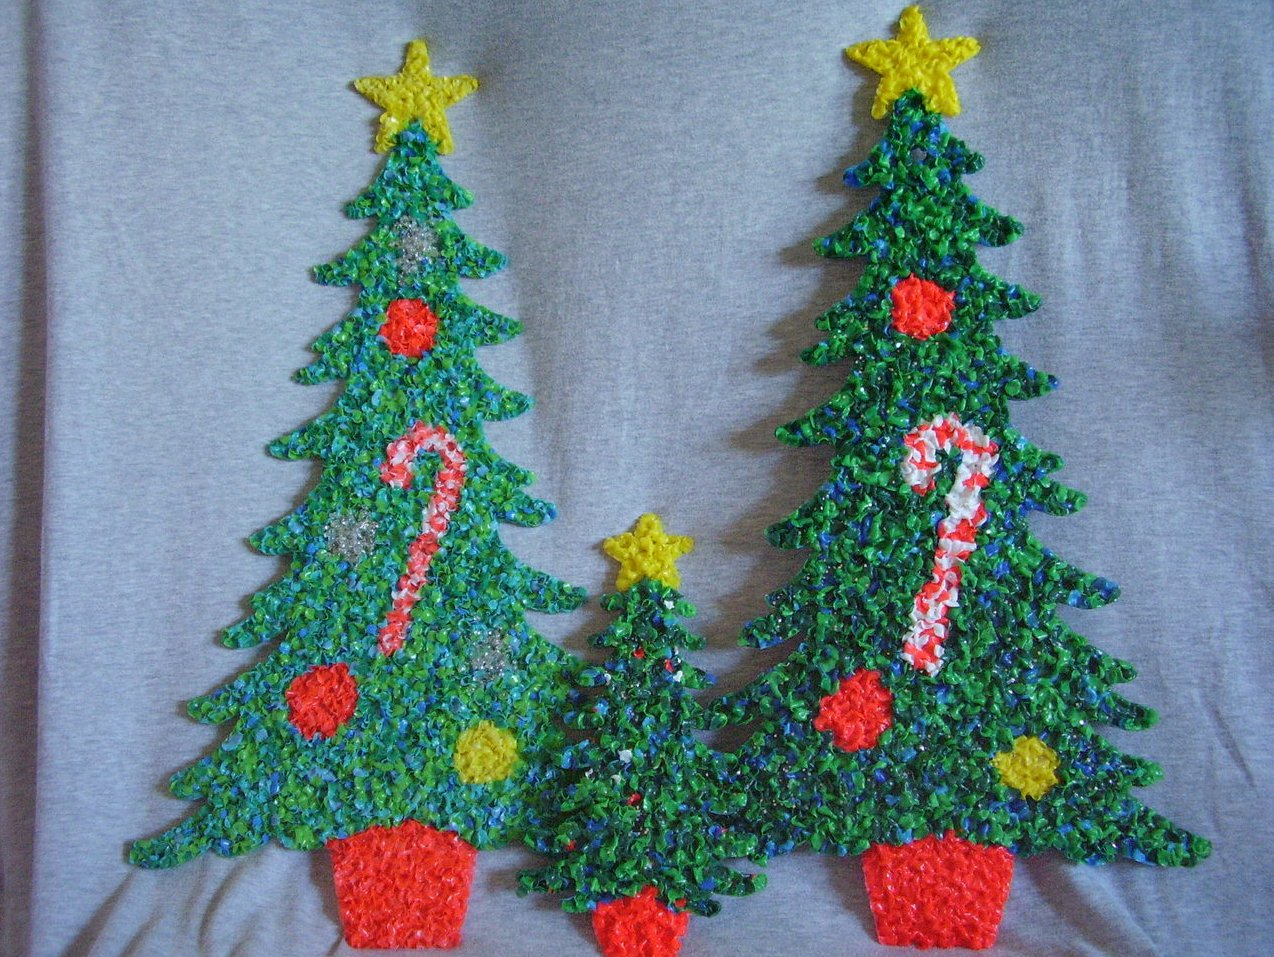 Melted Plastic Popcorn Decorations Two Large One Small Christmas Trees